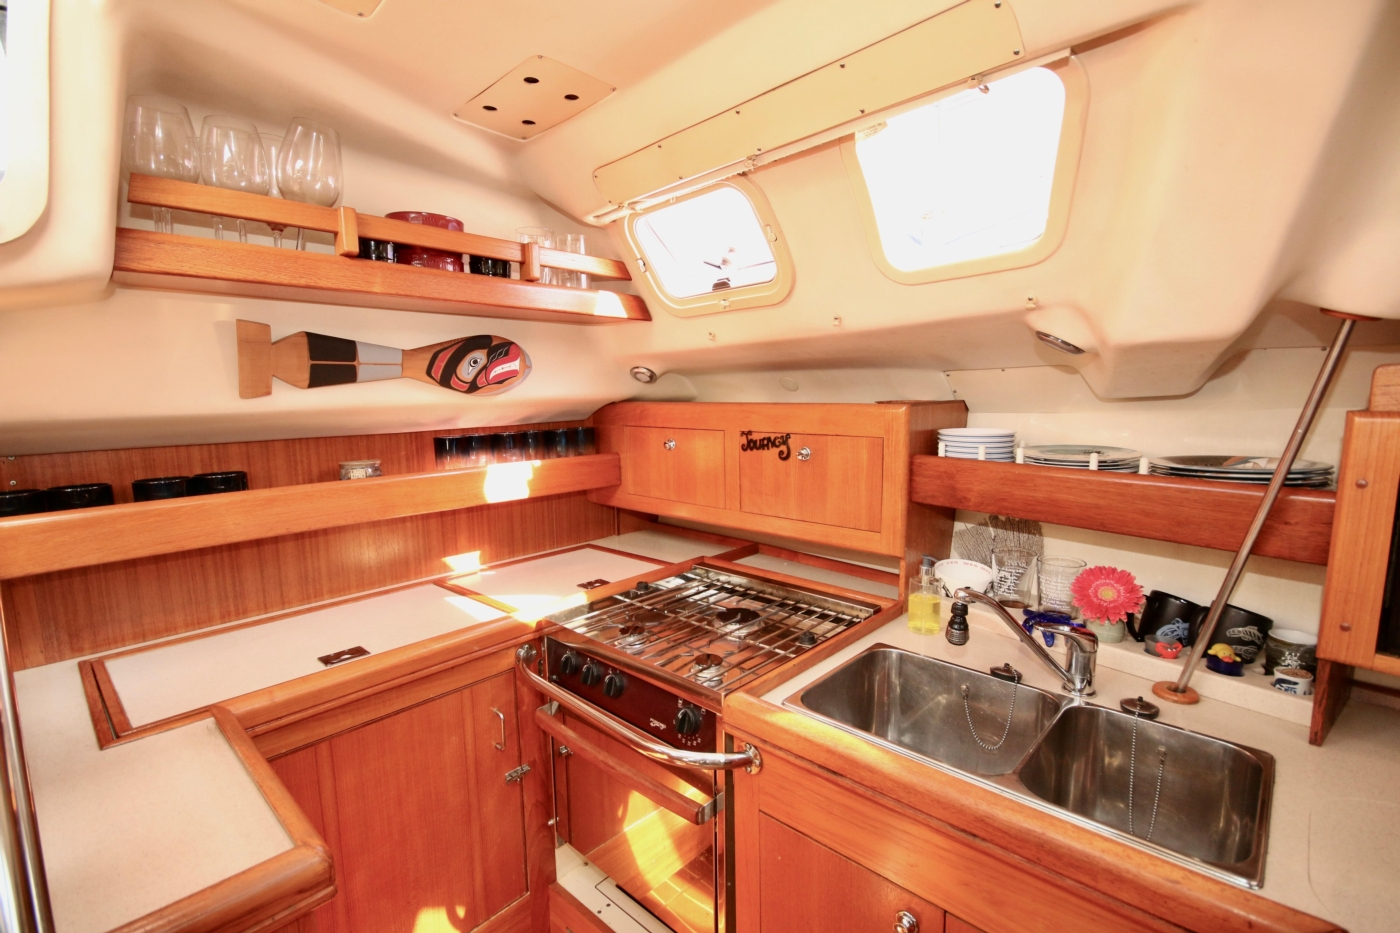 2004 Hunter Passage 420, Looking aft in galley